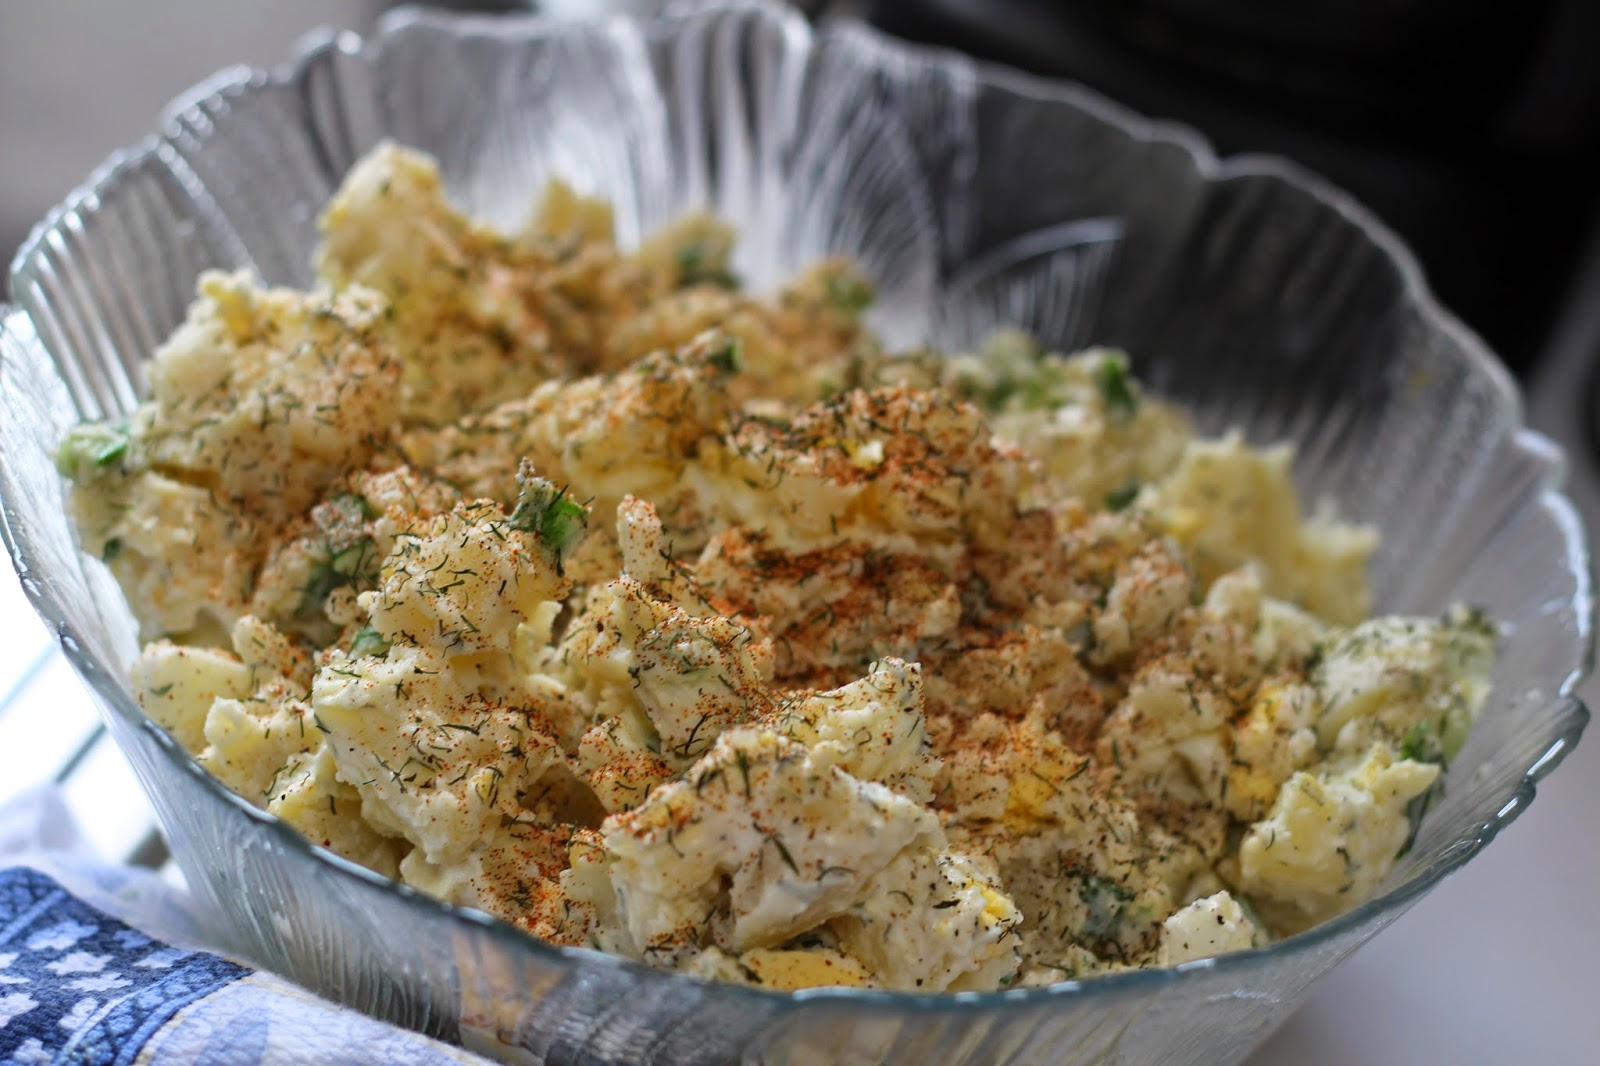 How To Make Potato Salad With Dill